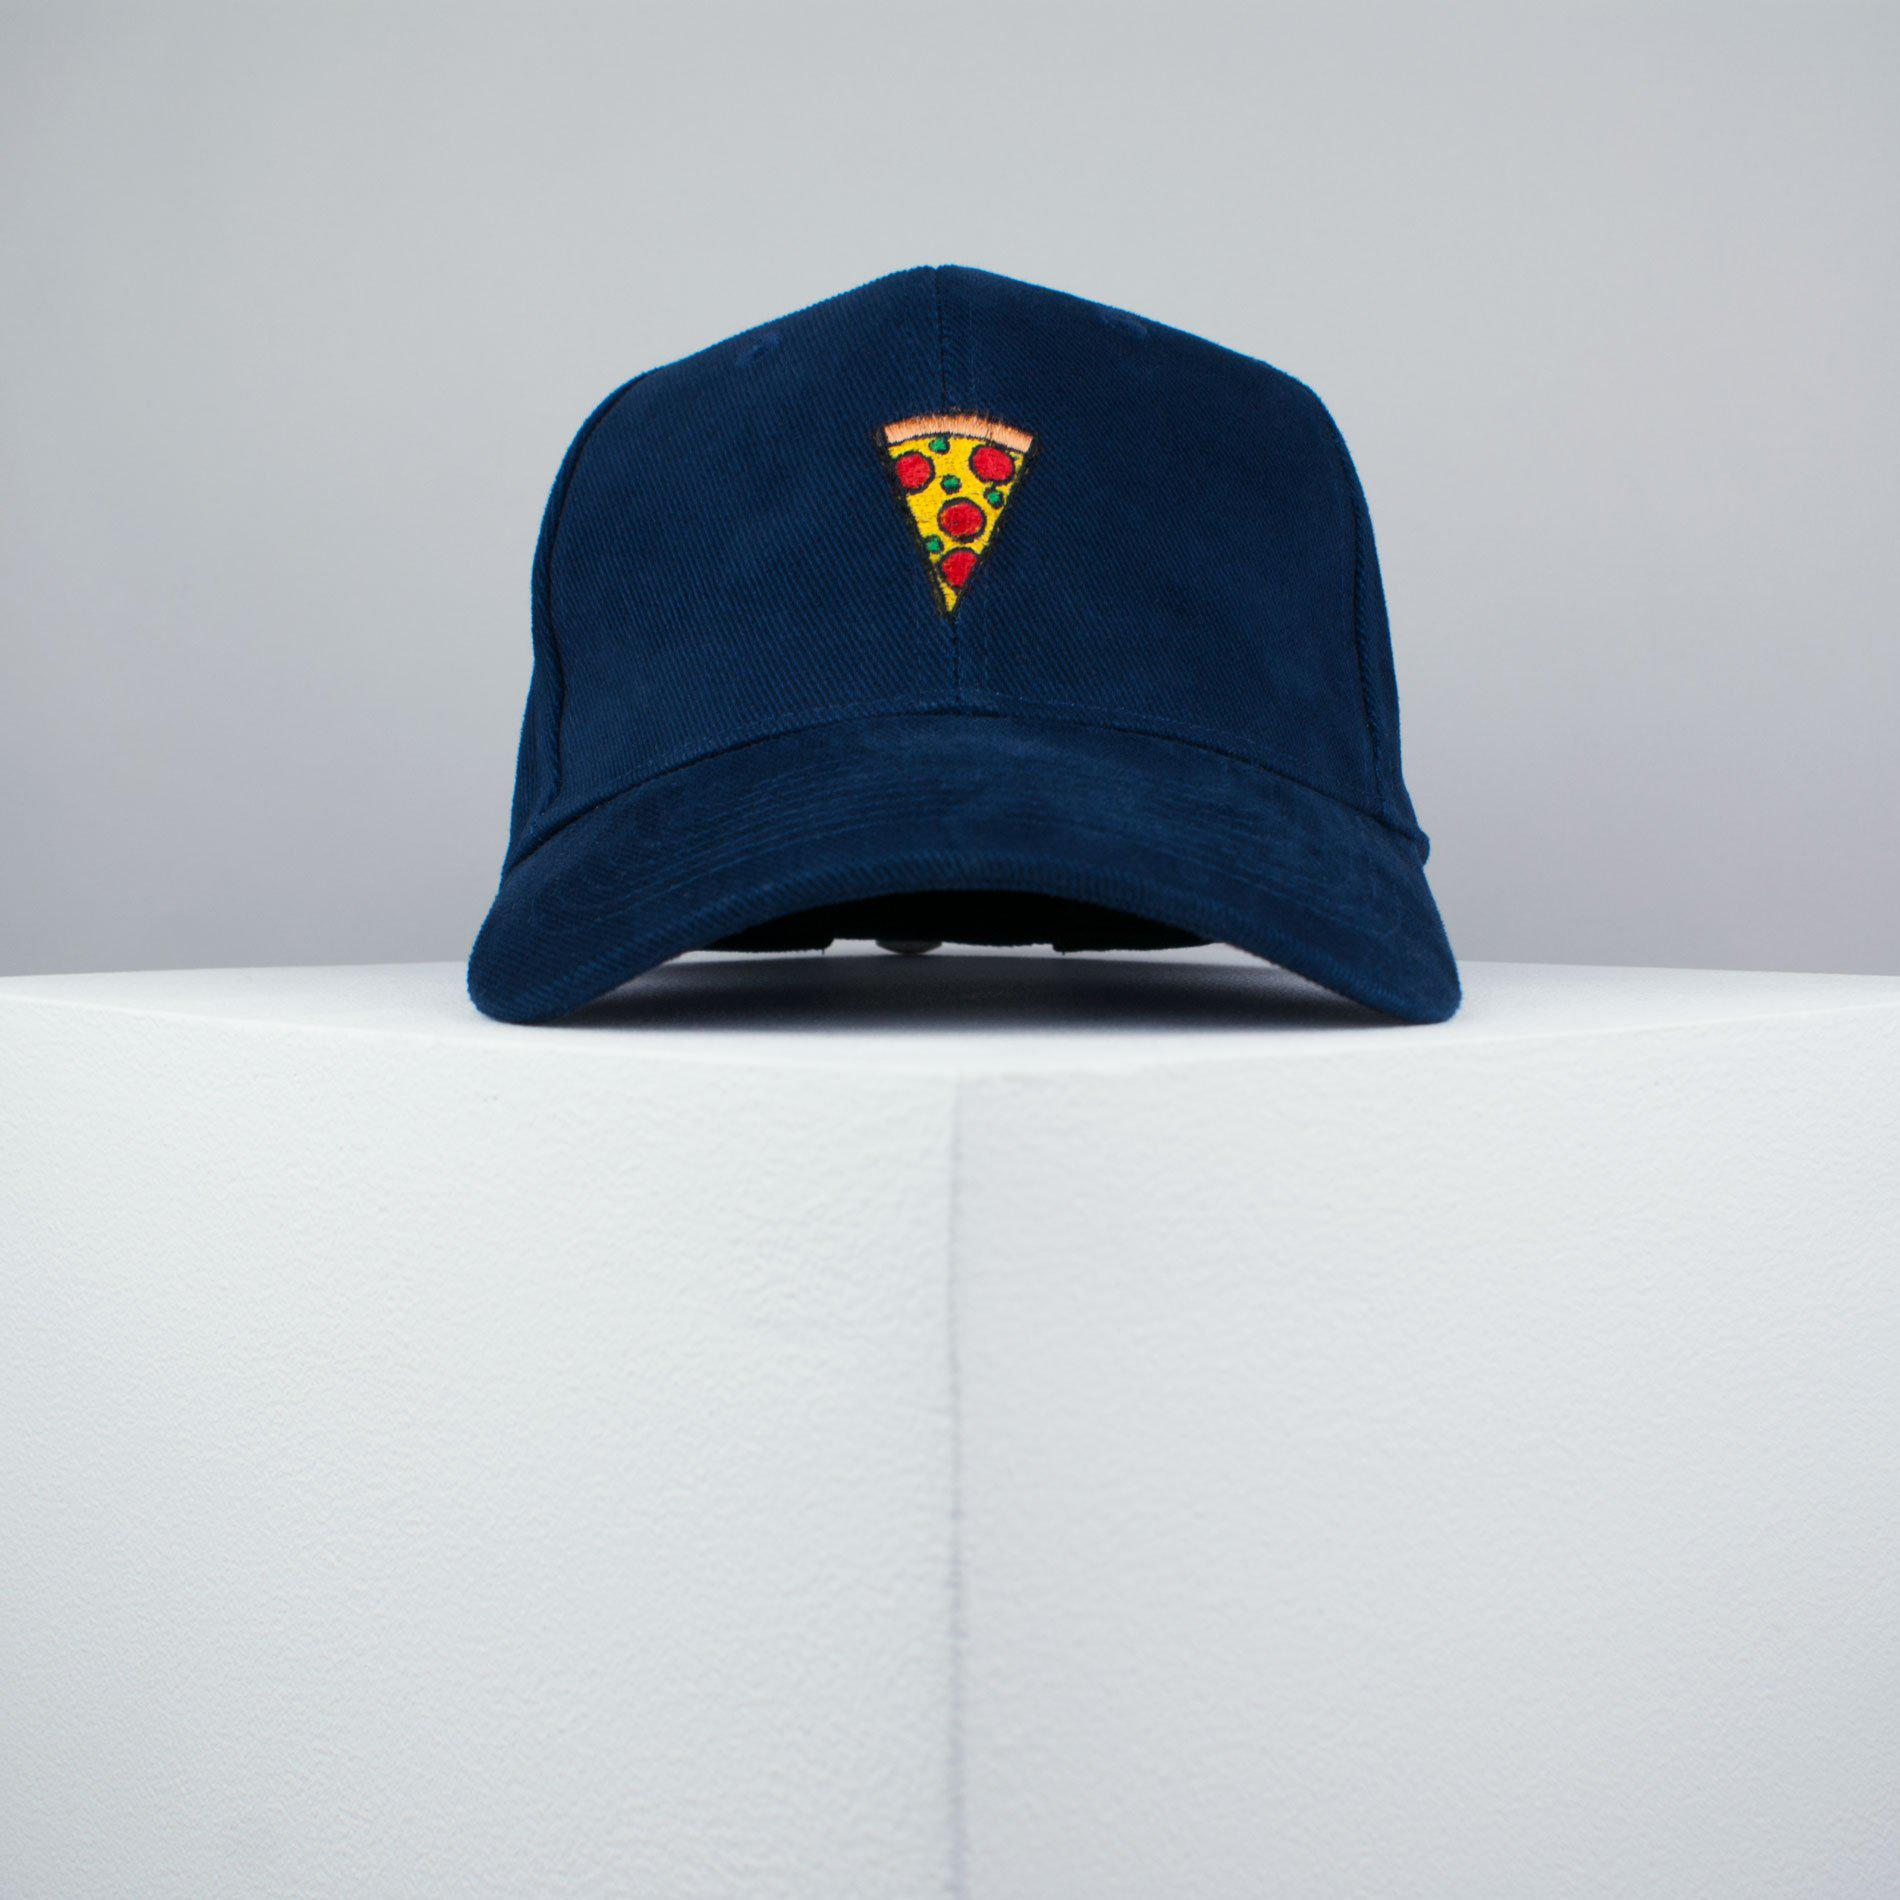 8a8fbec0e88 ... Pizza slice embroidered baseball cap navy   pizza   patches   food    embroidery   patch ...